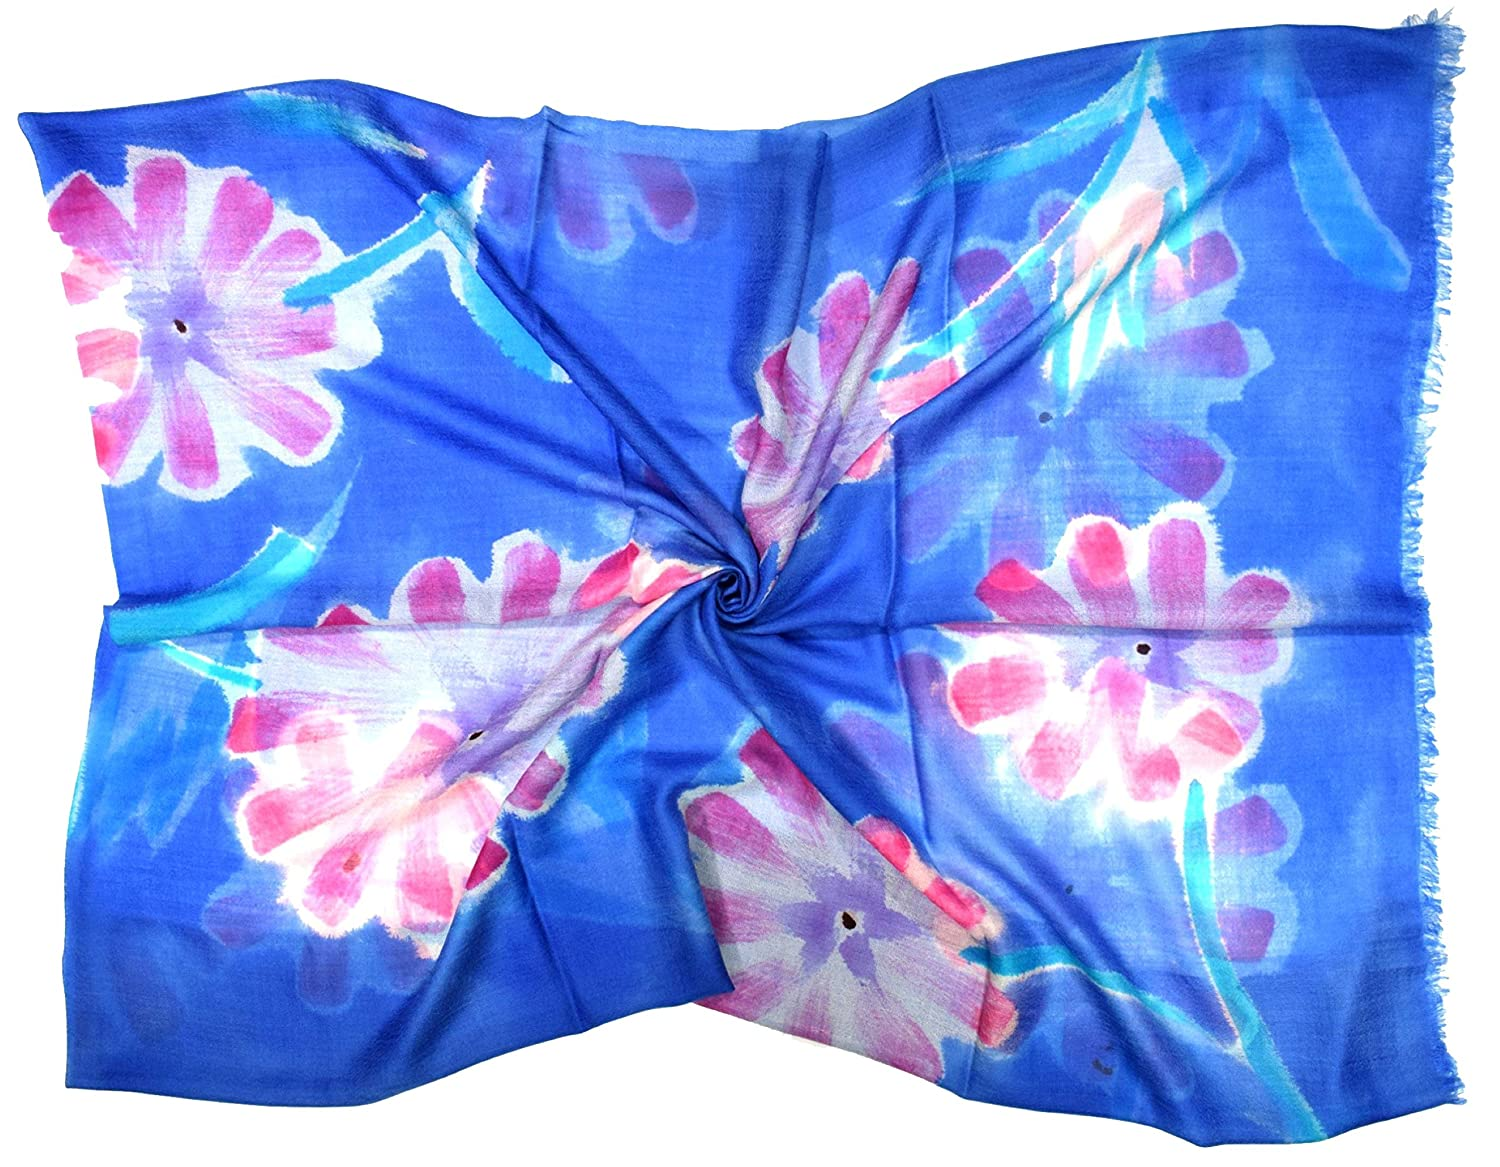 Blue with Large Pink Flower Design Hand Painted Large Silk/Cashmere Blend Scarf